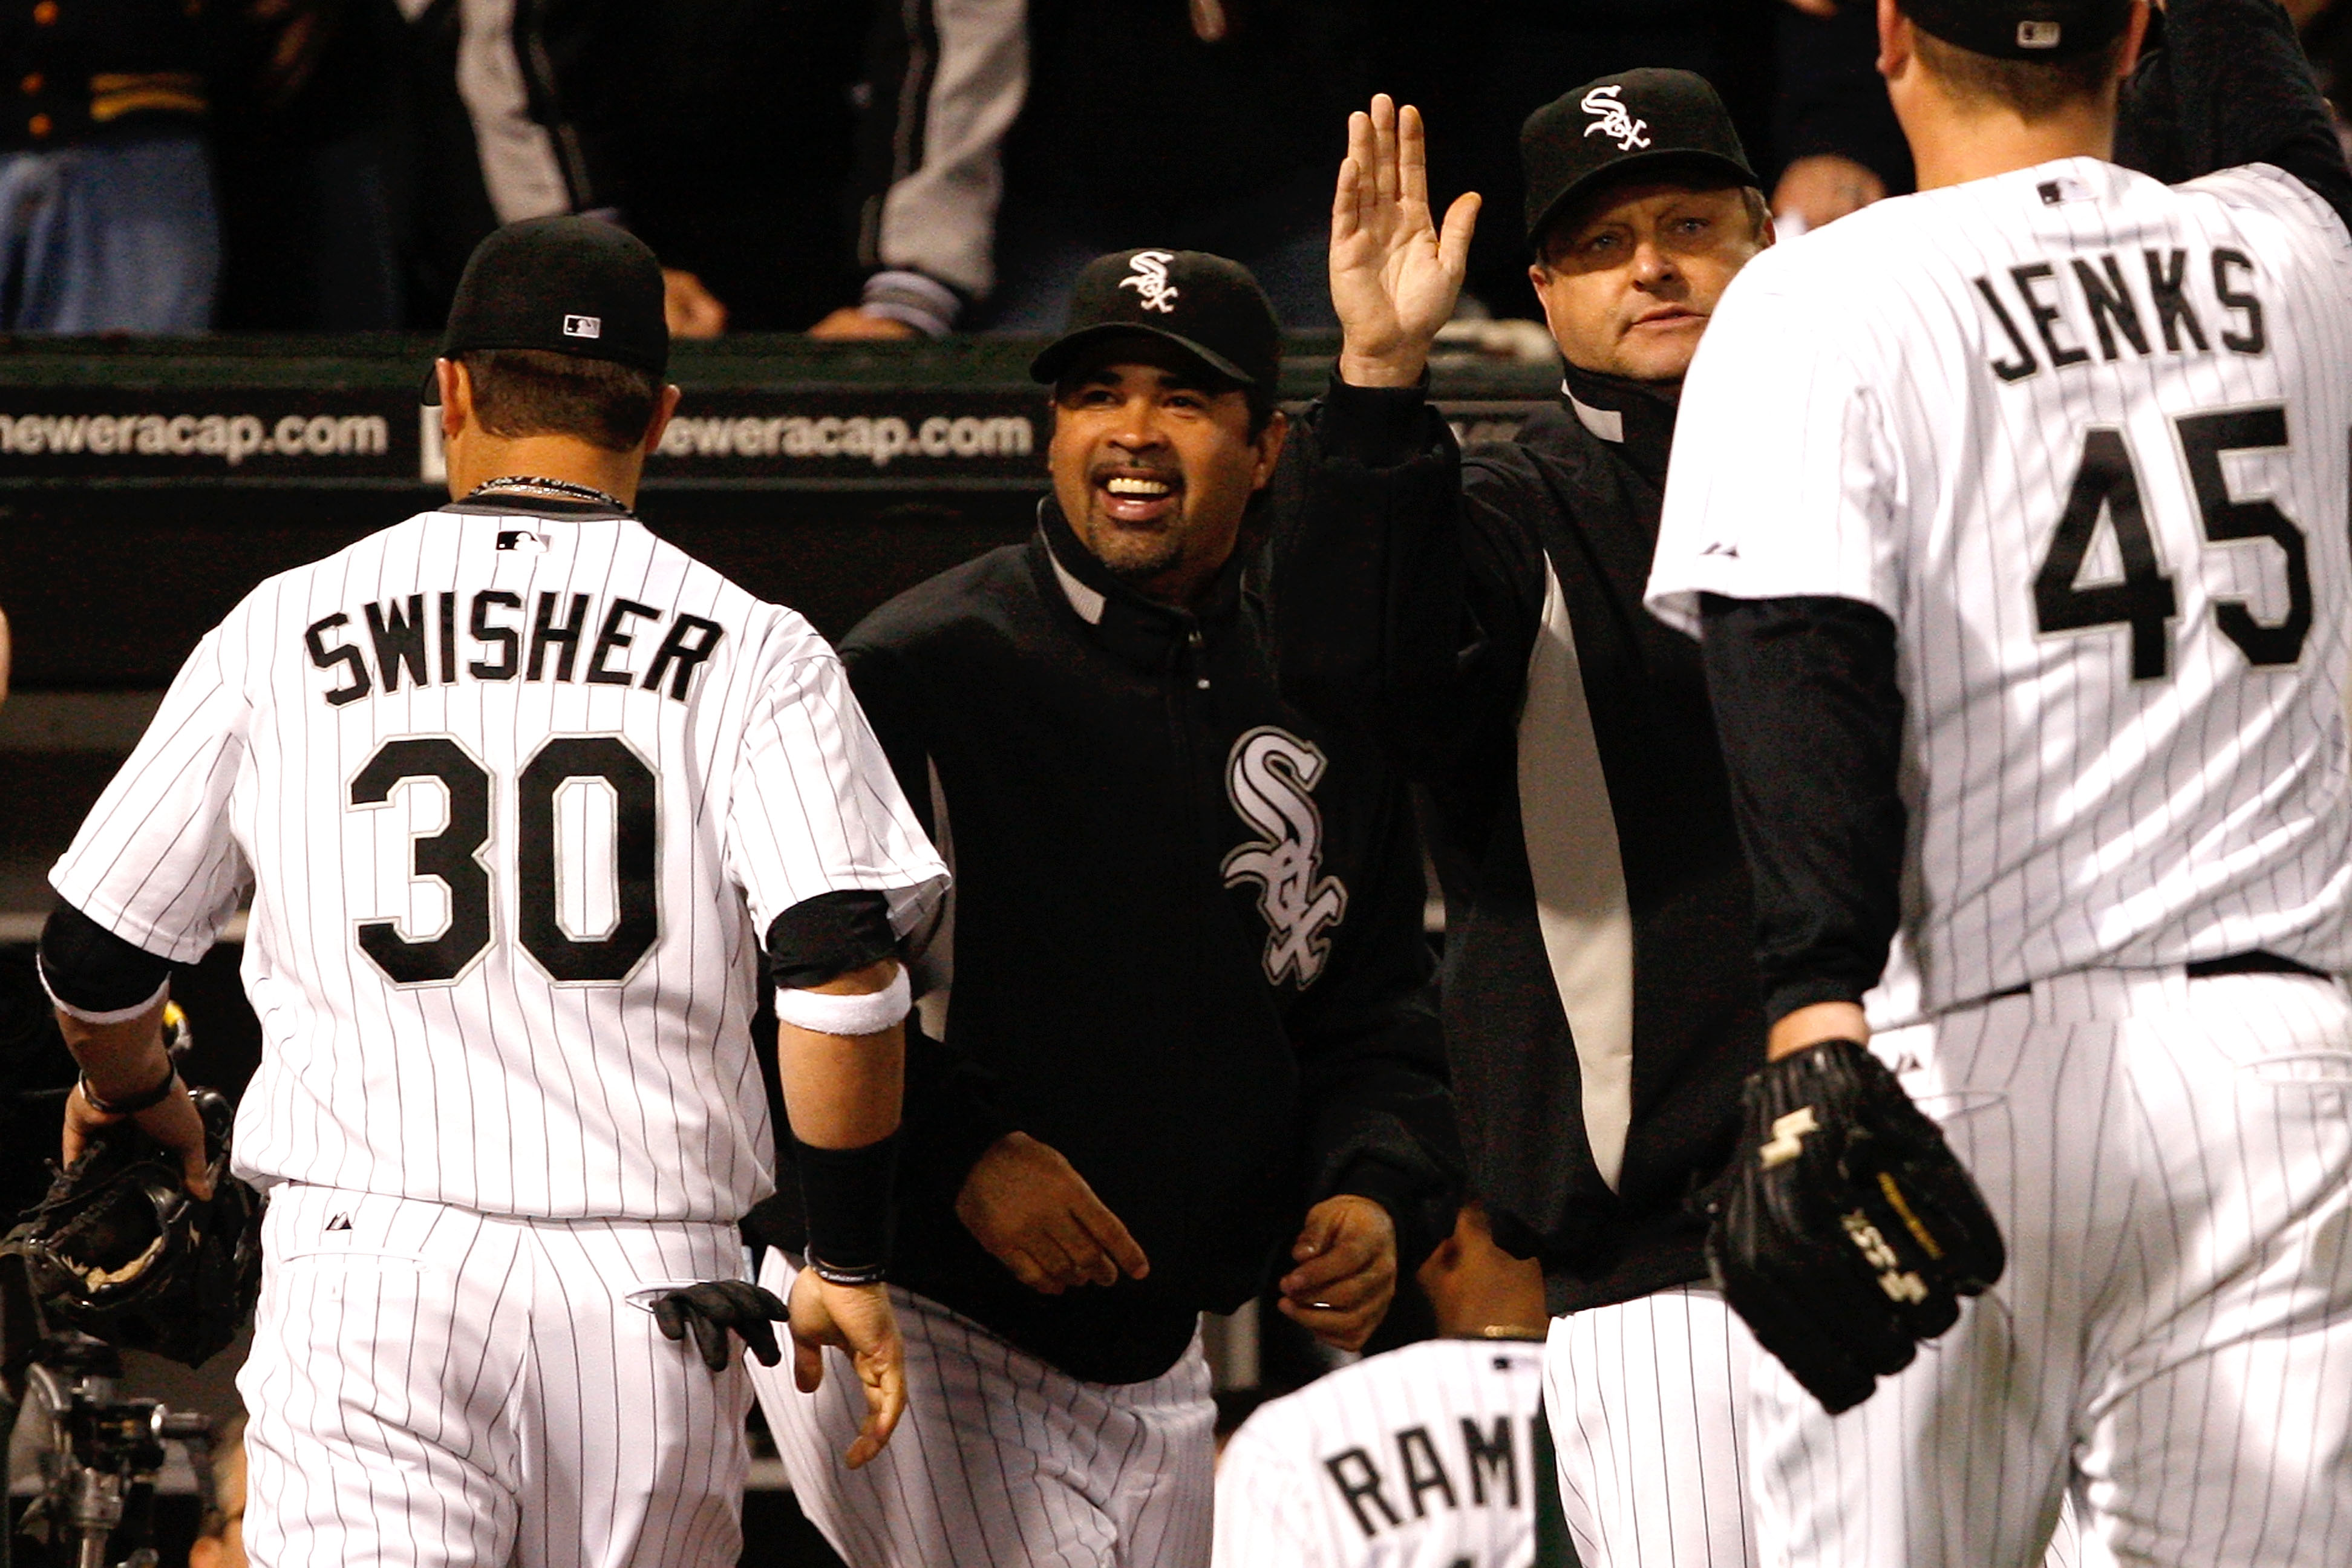 Nick Swisher Isn't the Only Player Ozzie Guillen Had a Problem With